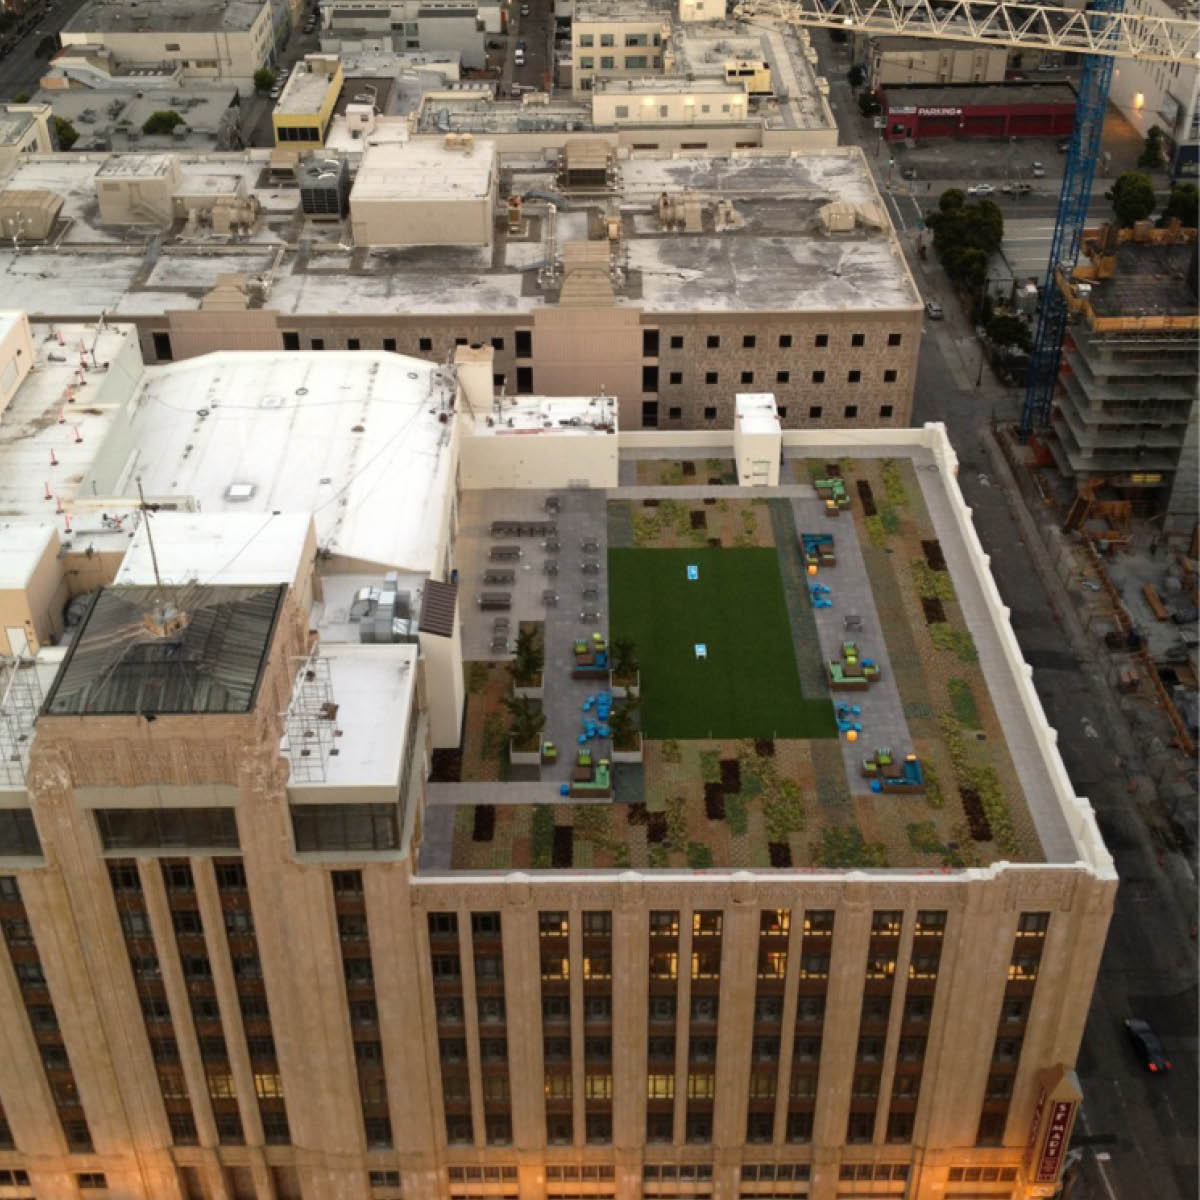 Twitter Headquarters Roof Garden